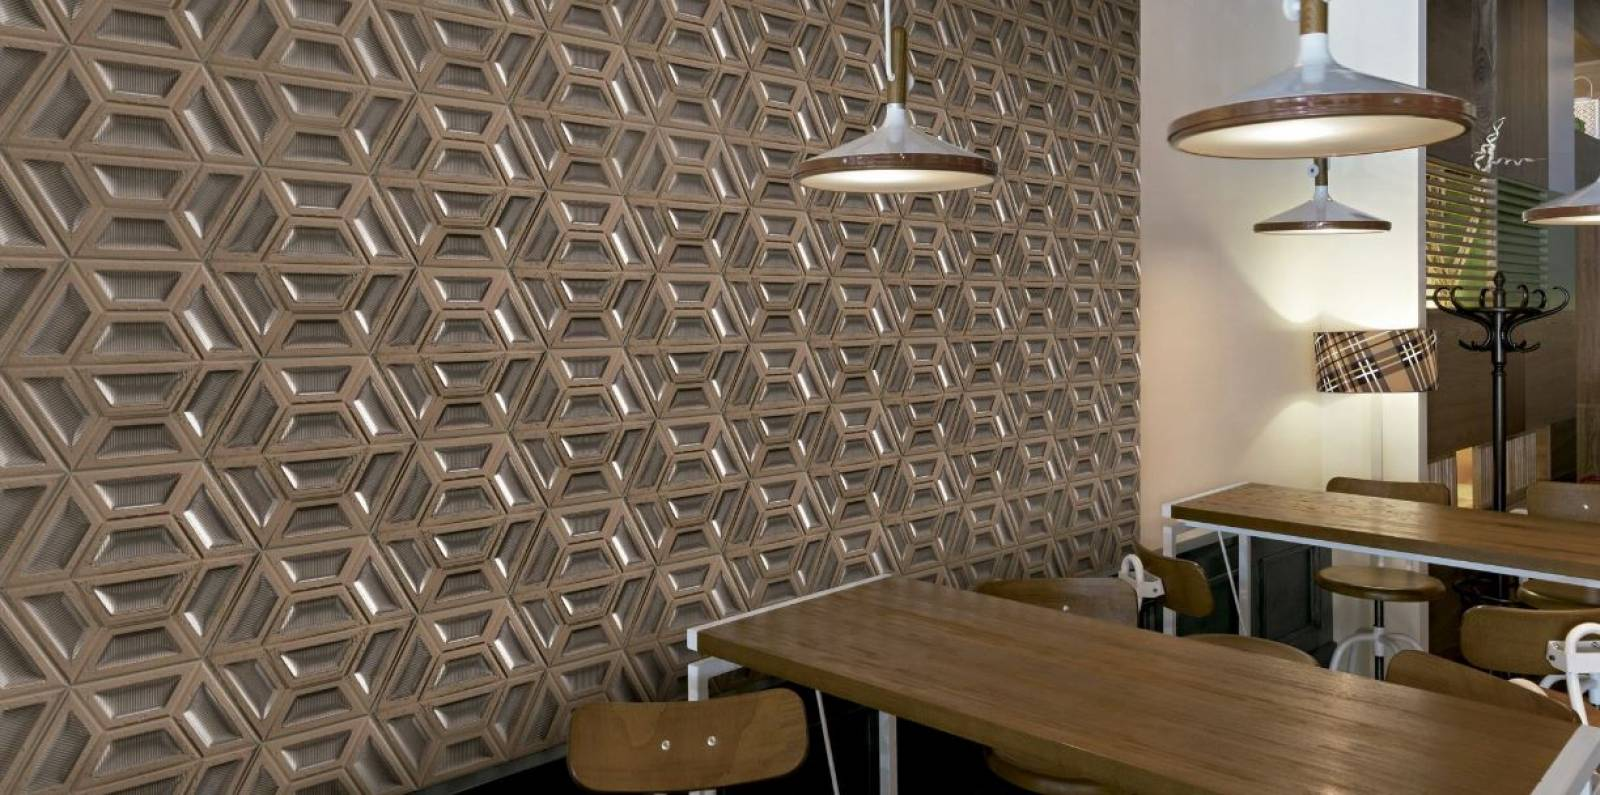 carrelage mural hexagonal 3d effet ciment ou metallise jacou a21 vente de carrelage imitation. Black Bedroom Furniture Sets. Home Design Ideas